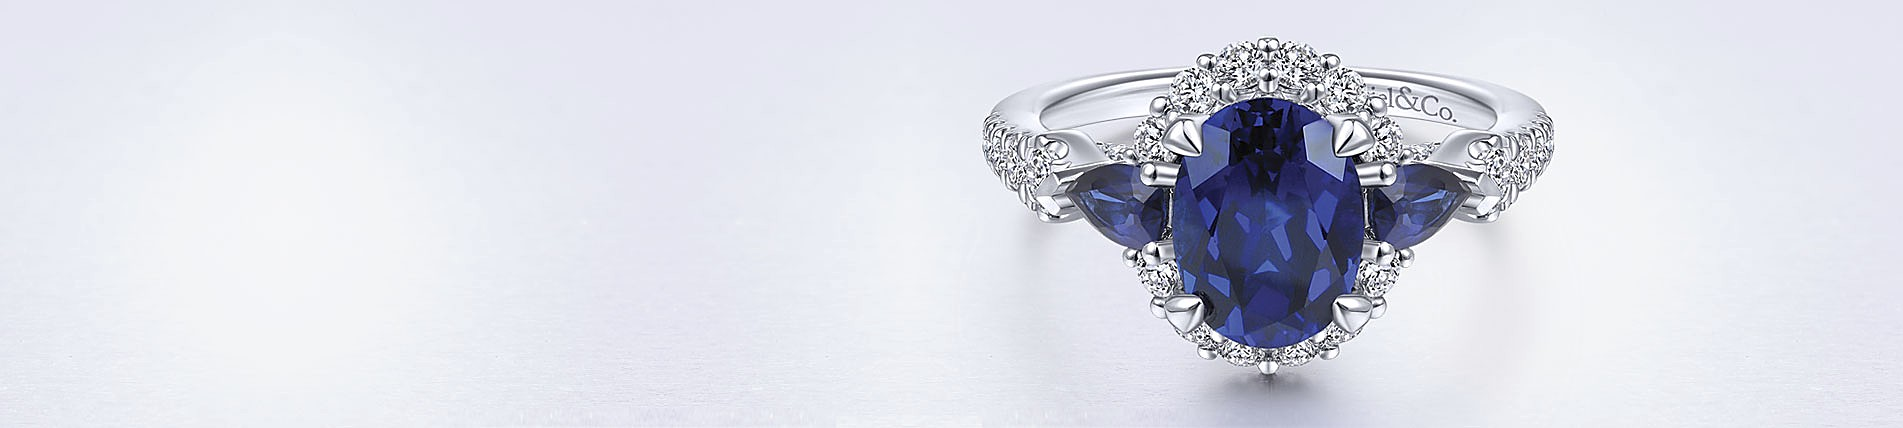 amazing montana rings green eragem mounting sapphire ring vintage engagement blue platinum